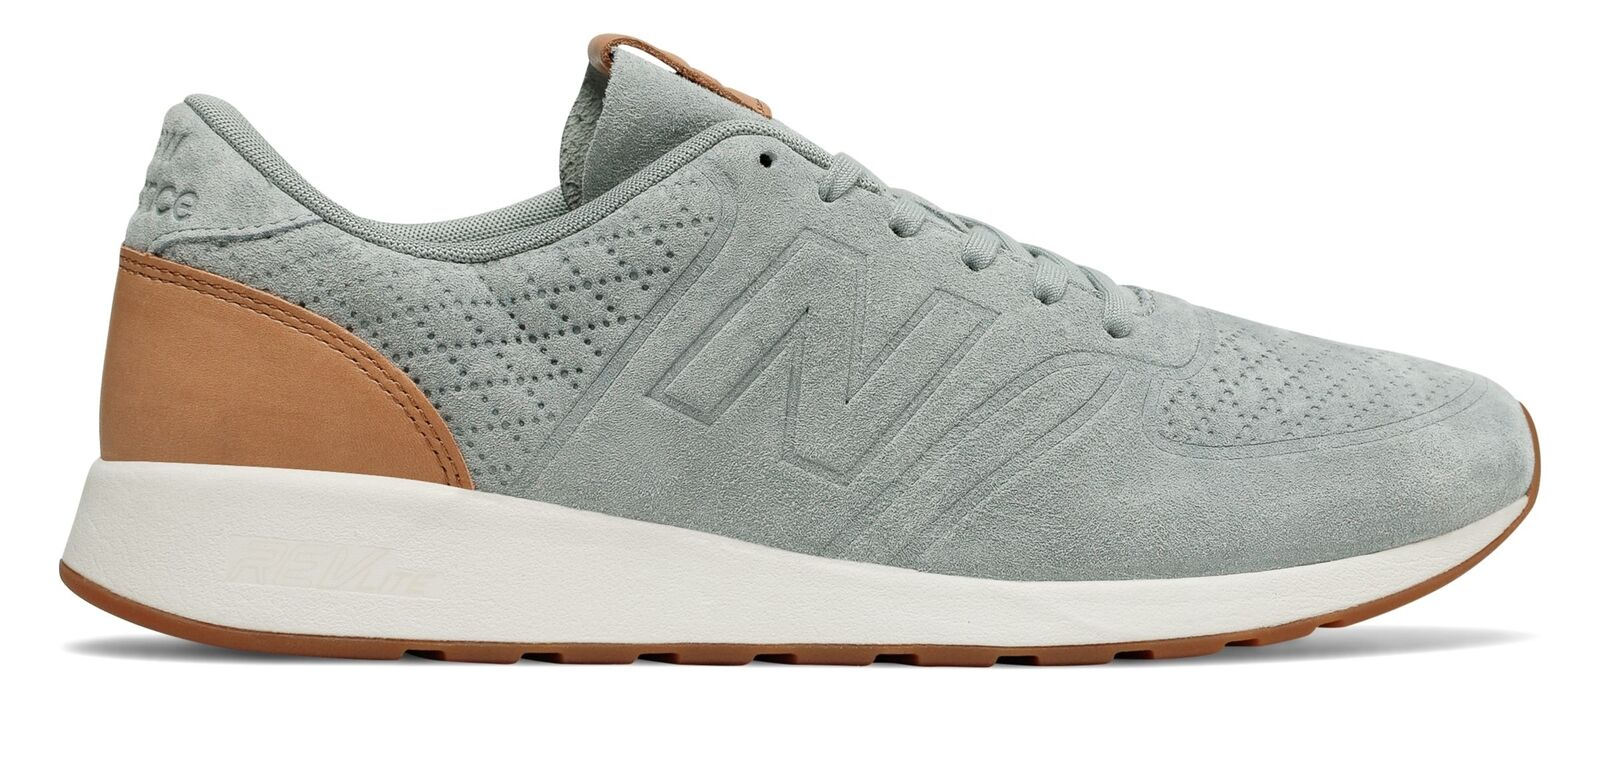 New Balance 420 Deconstructed Uomo Shoes Grey with Tan